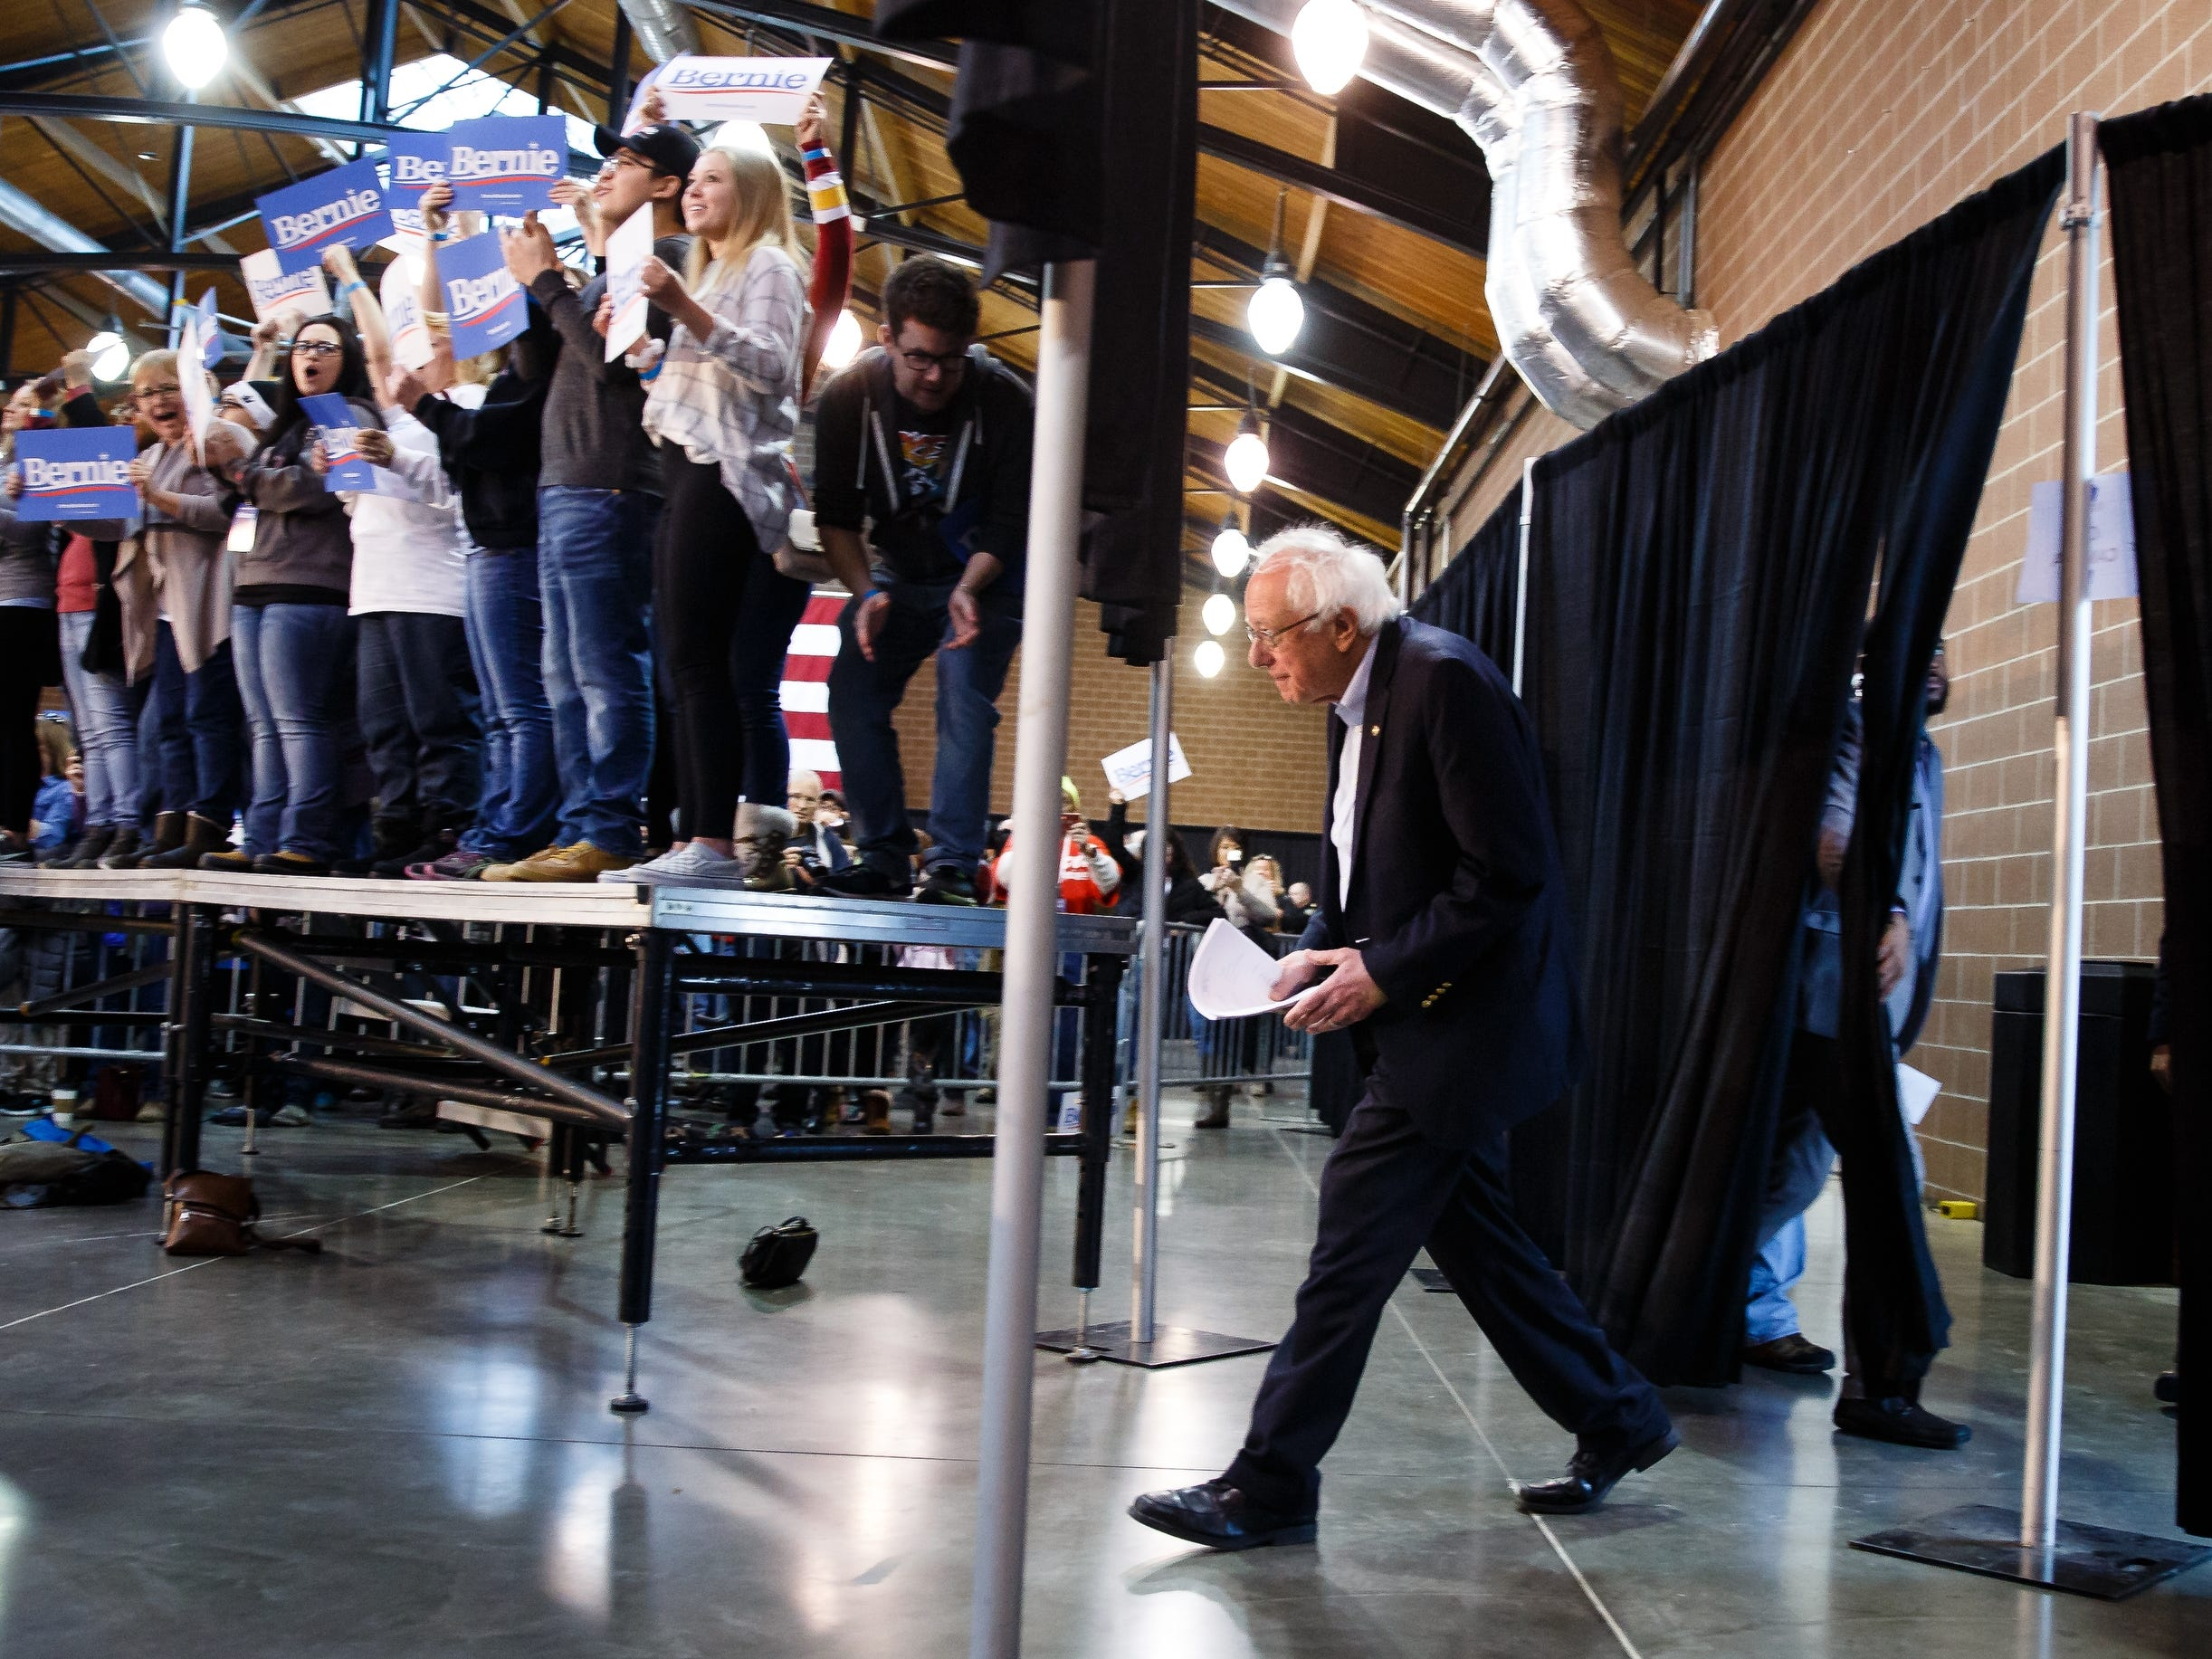 Democratic presidential candidate Bernie Sanders walks onto the stage before a rally at the Iowa State Fairgrounds on Saturday, March 9, 2019 in Des Moines.